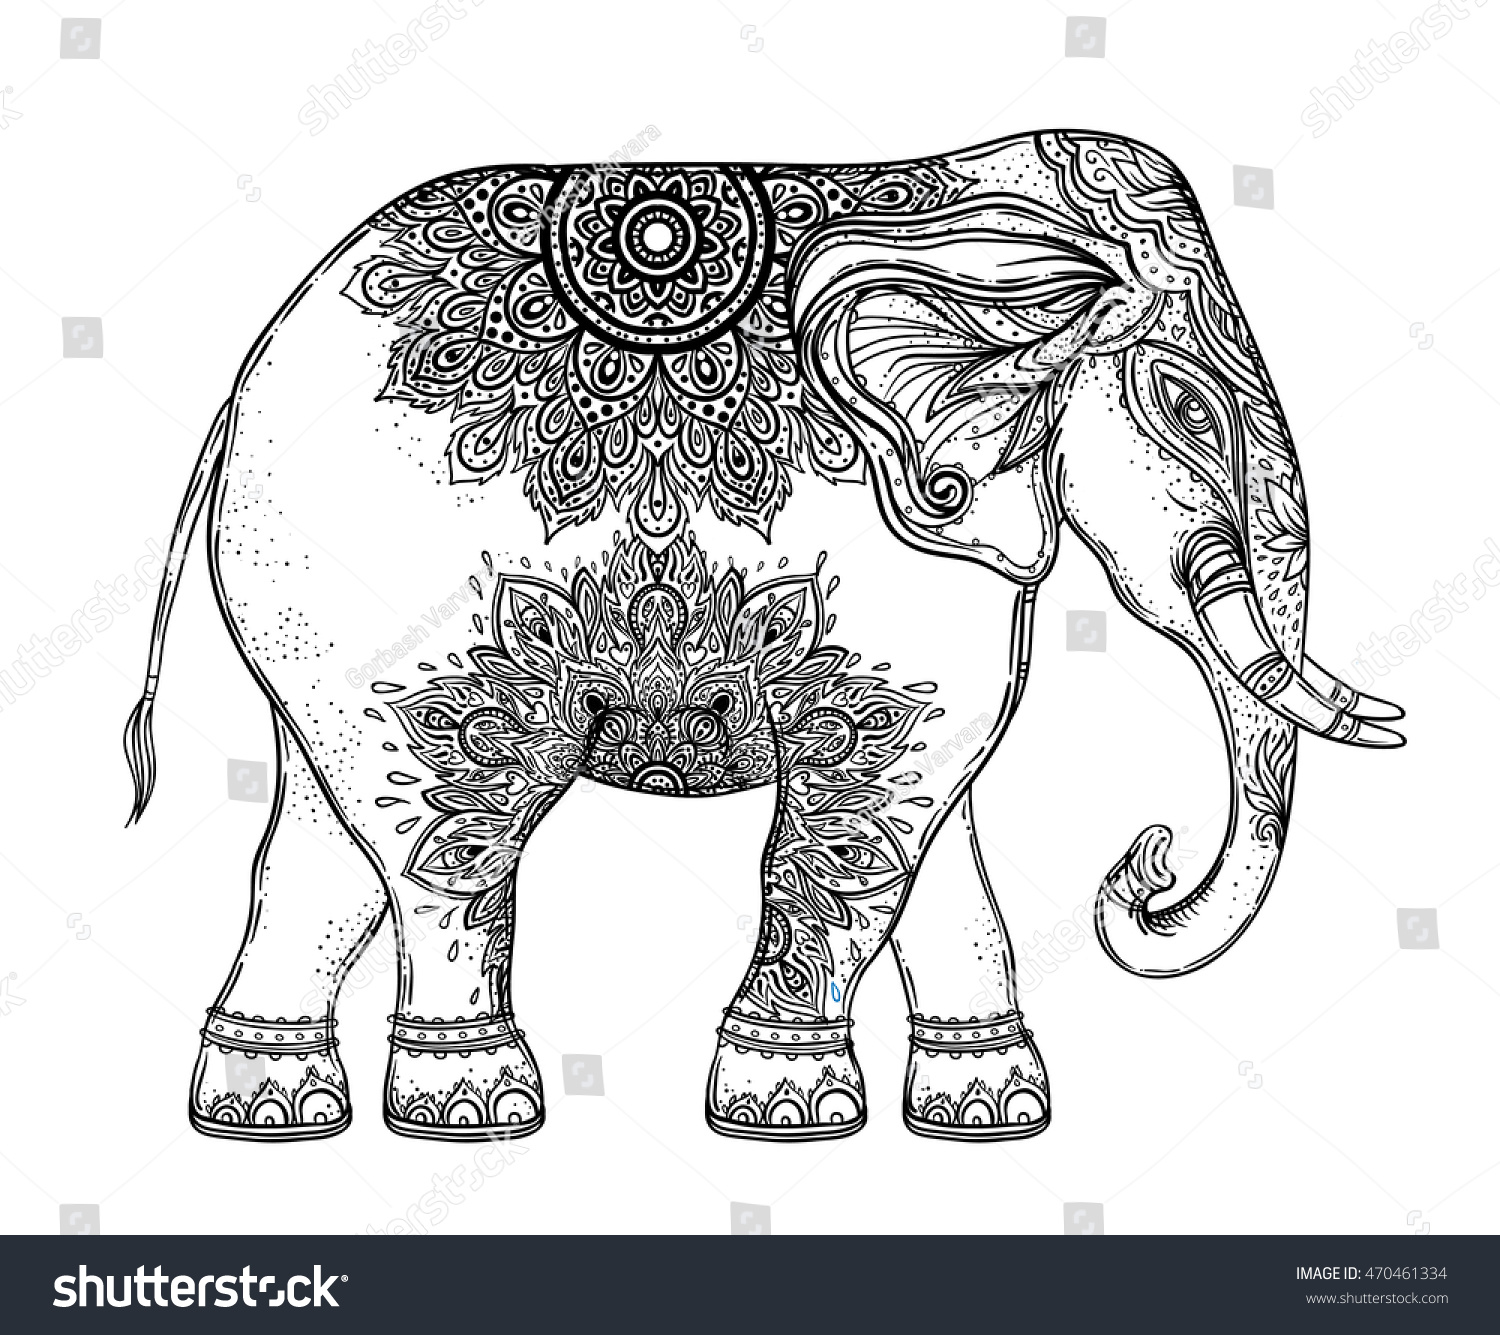 Beautiful Handdrawn Tribal Style Elephant Coloring Stock Vector ...